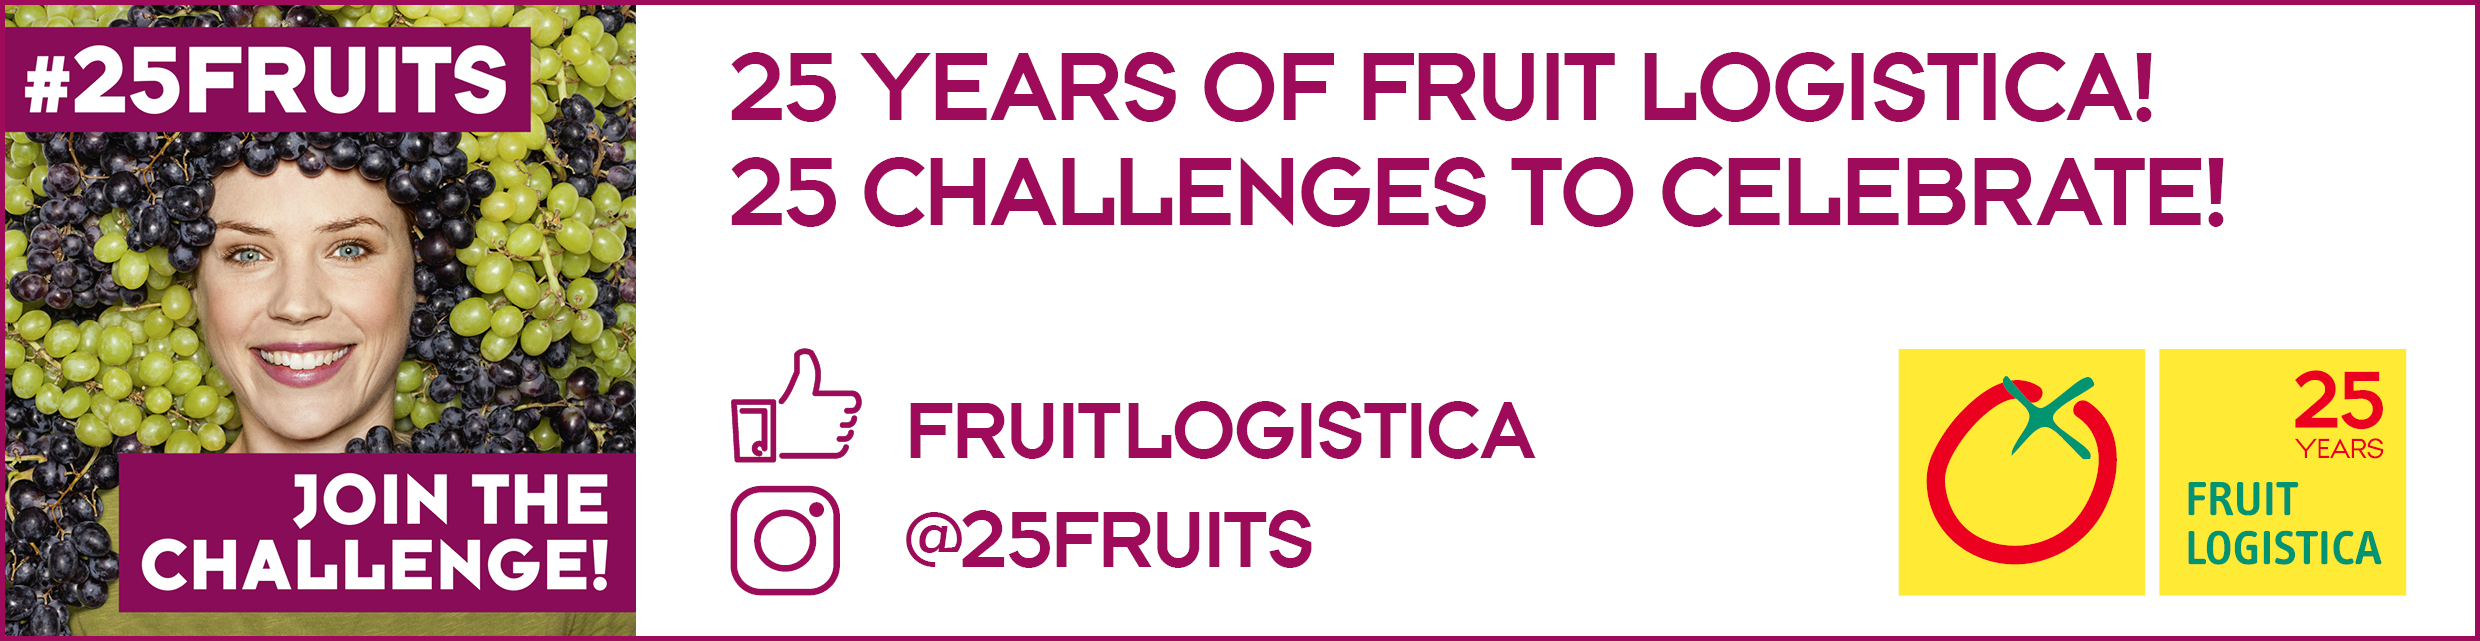 FruitLogistica_Berlino2017B